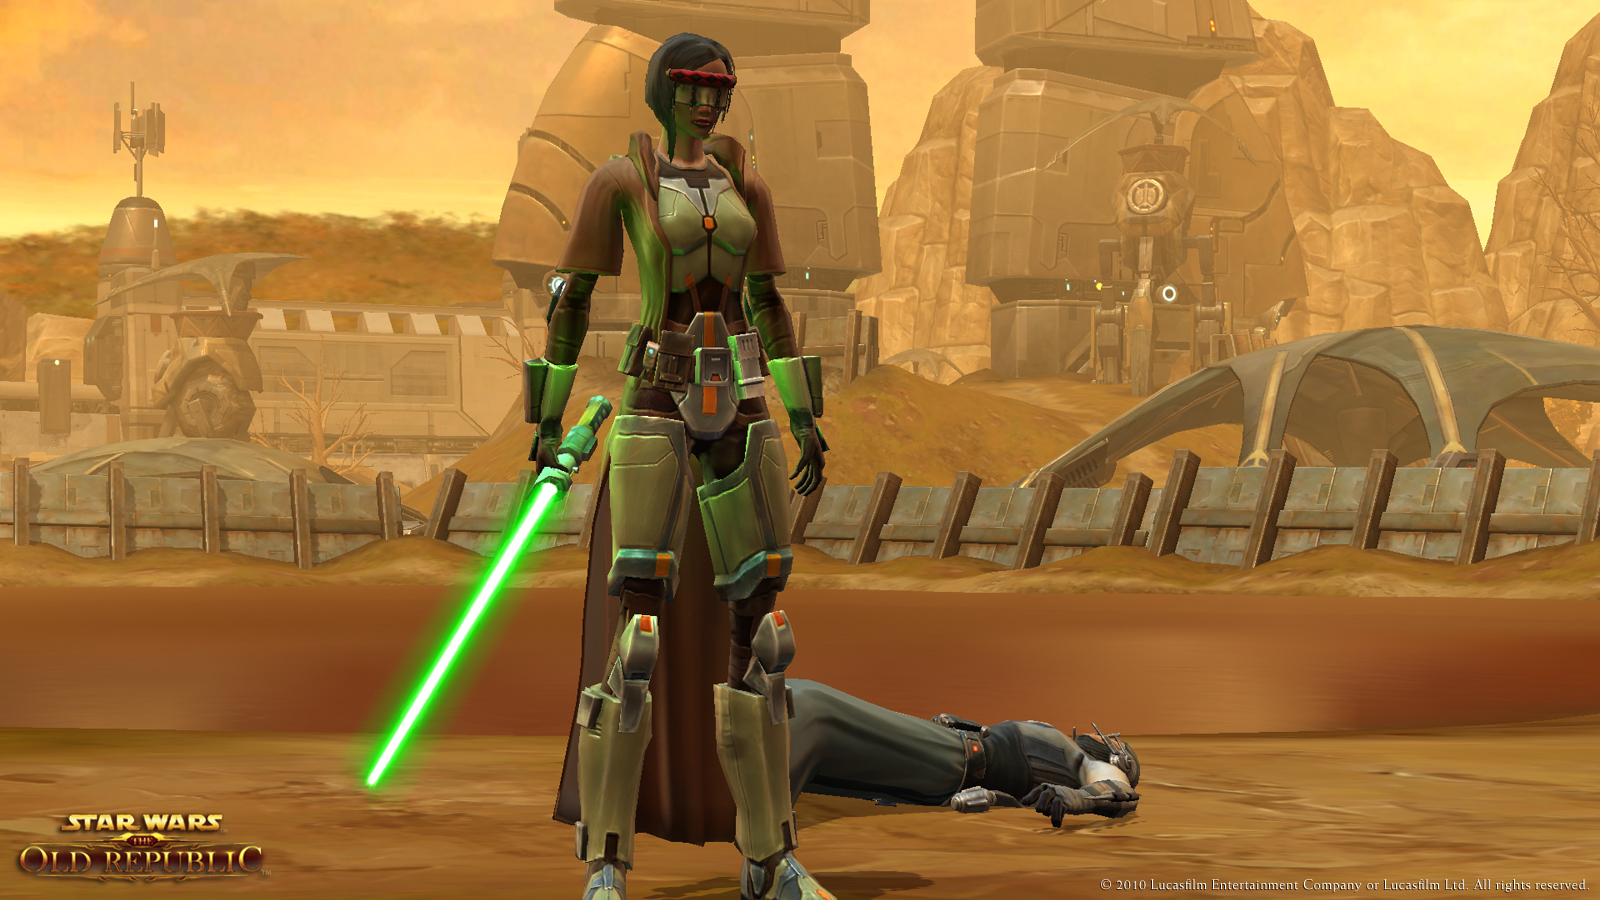 STAR WARS: The Old Republic - Bloom effects on lightsabers